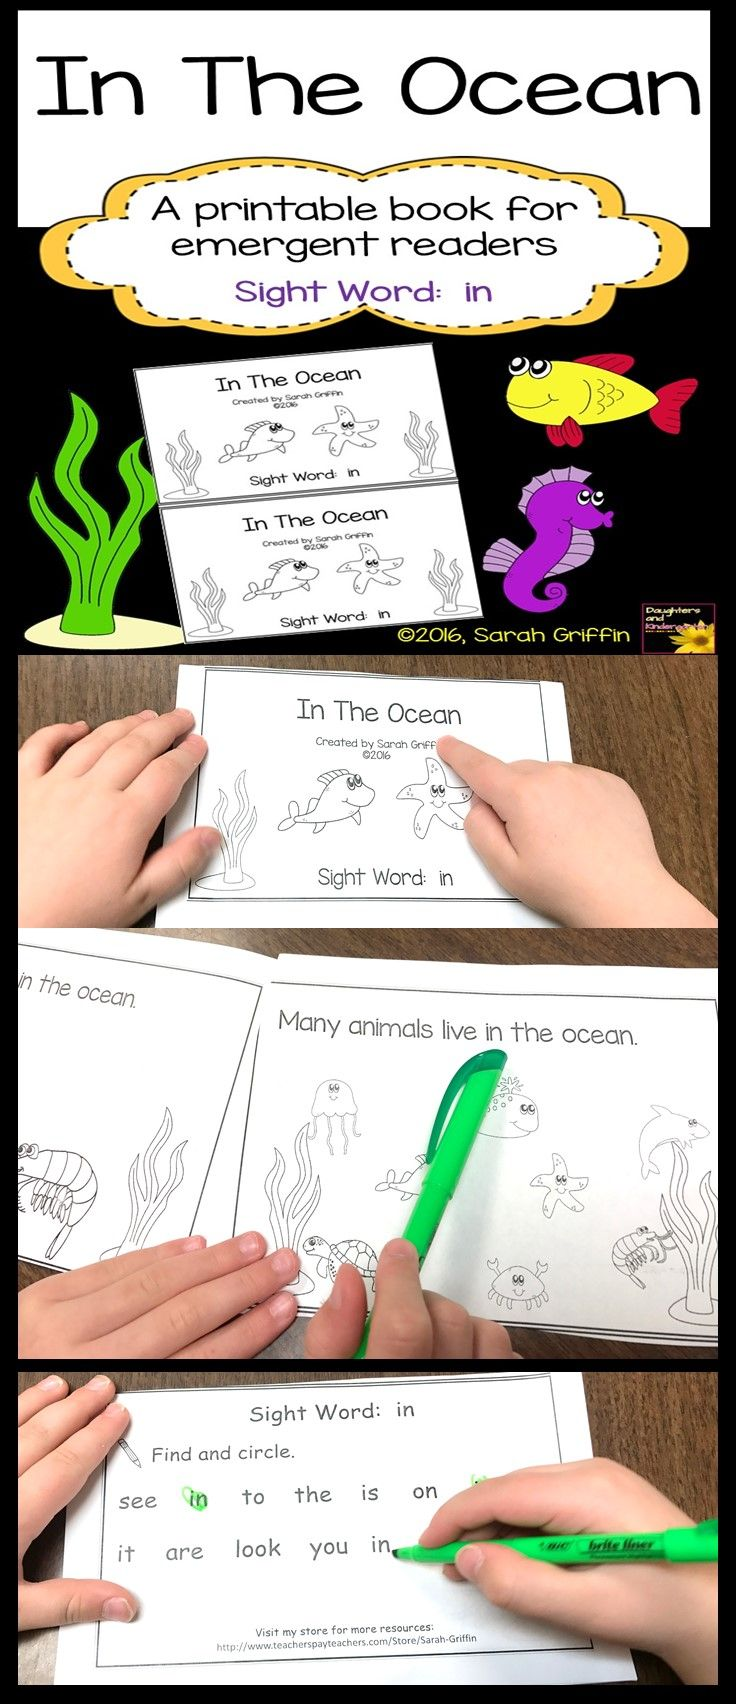 In the ocean decodable book for emergent readers